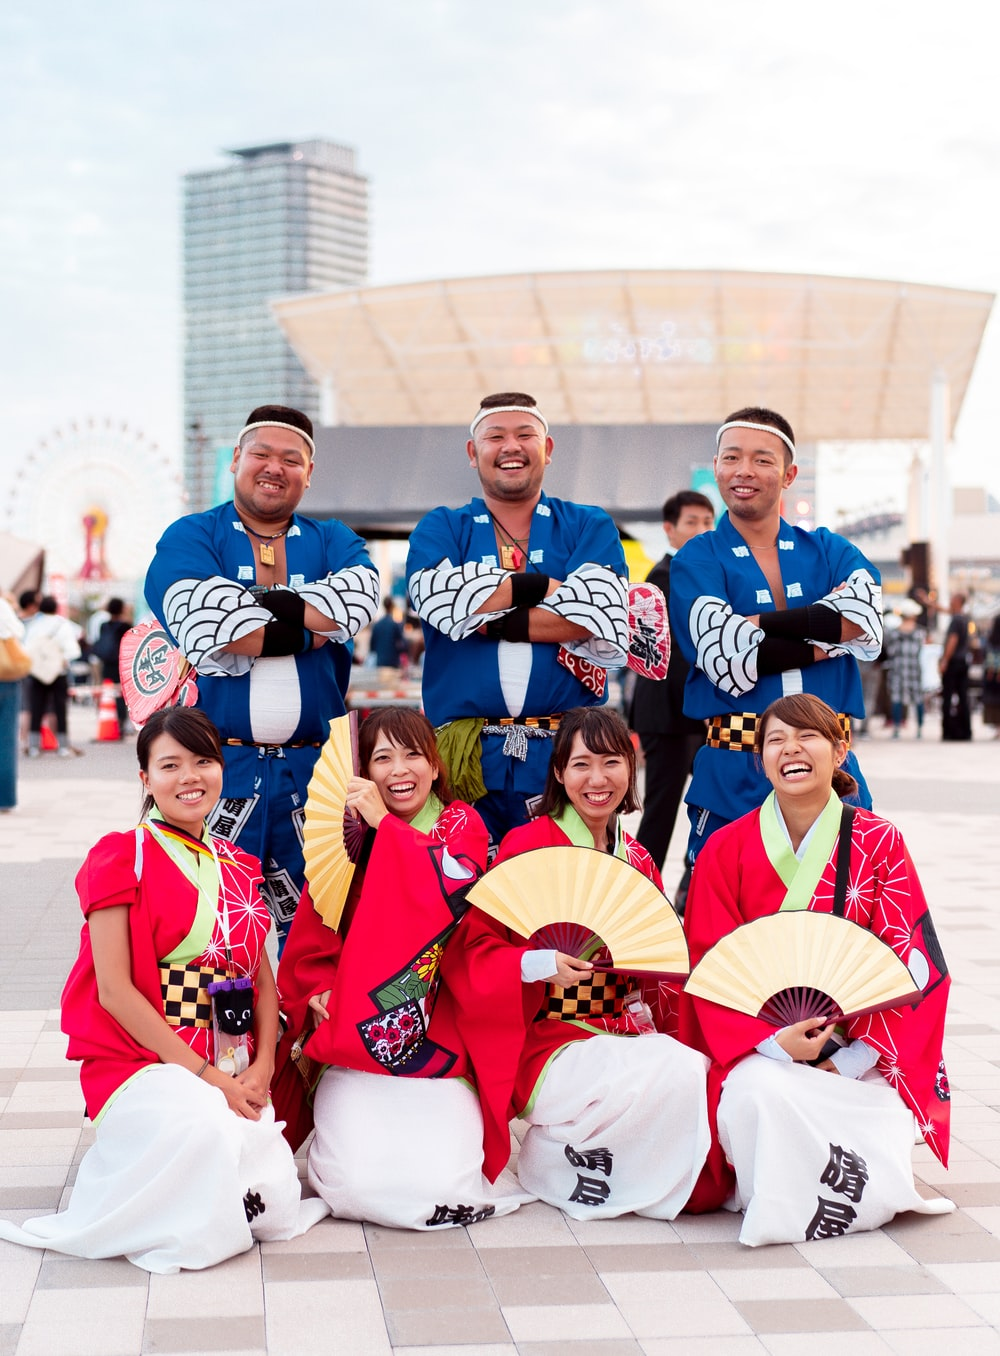 group of people wearing blue and red uniform